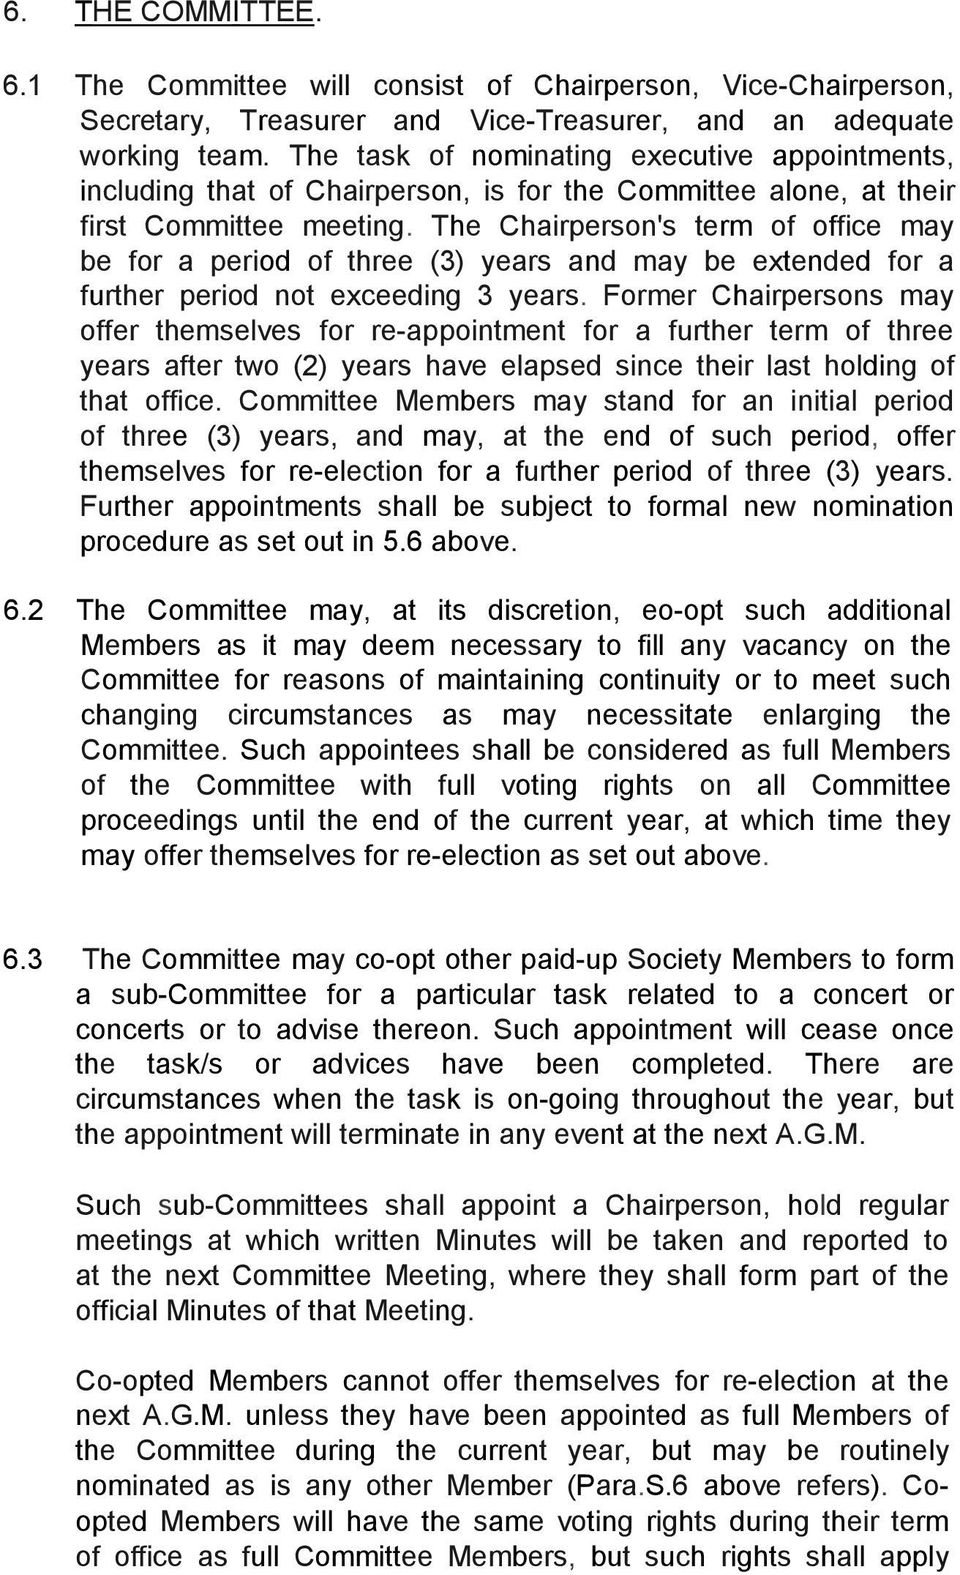 The Chairperson's term of office may be for a period of three (3) years and may be extended for a further period not exceeding 3 years.